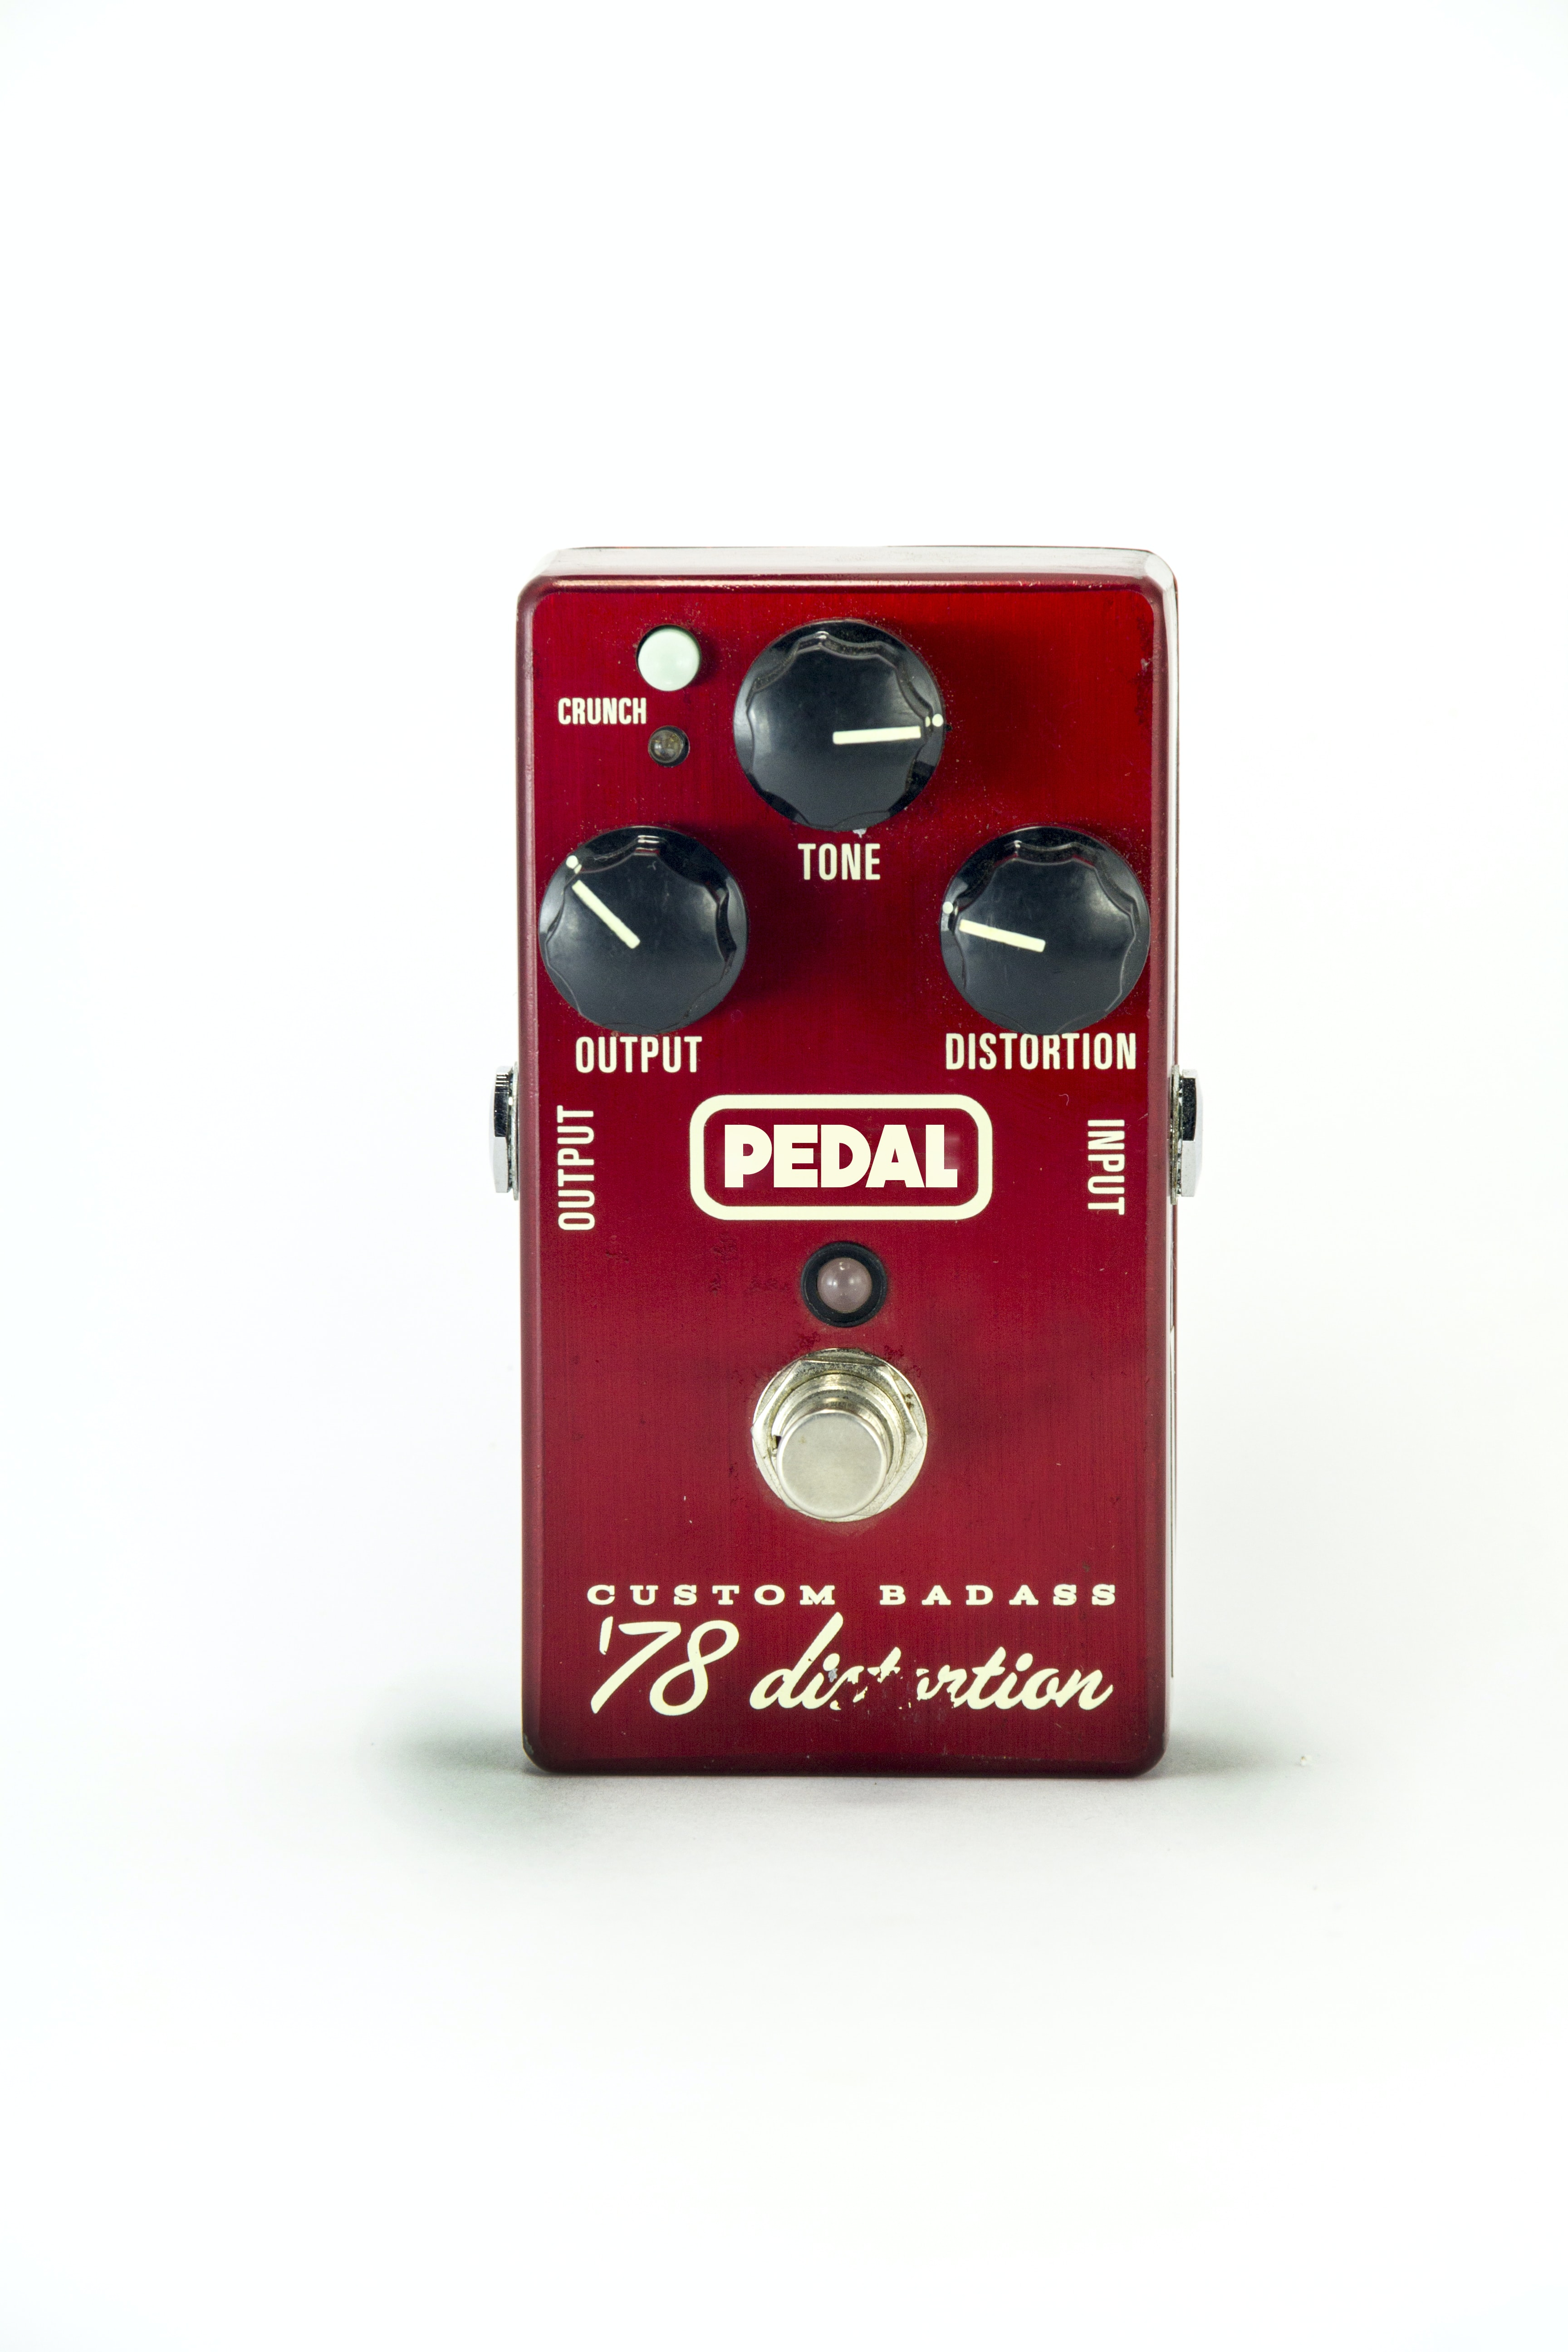 red, white, and black Pedal guitar distortion pedal